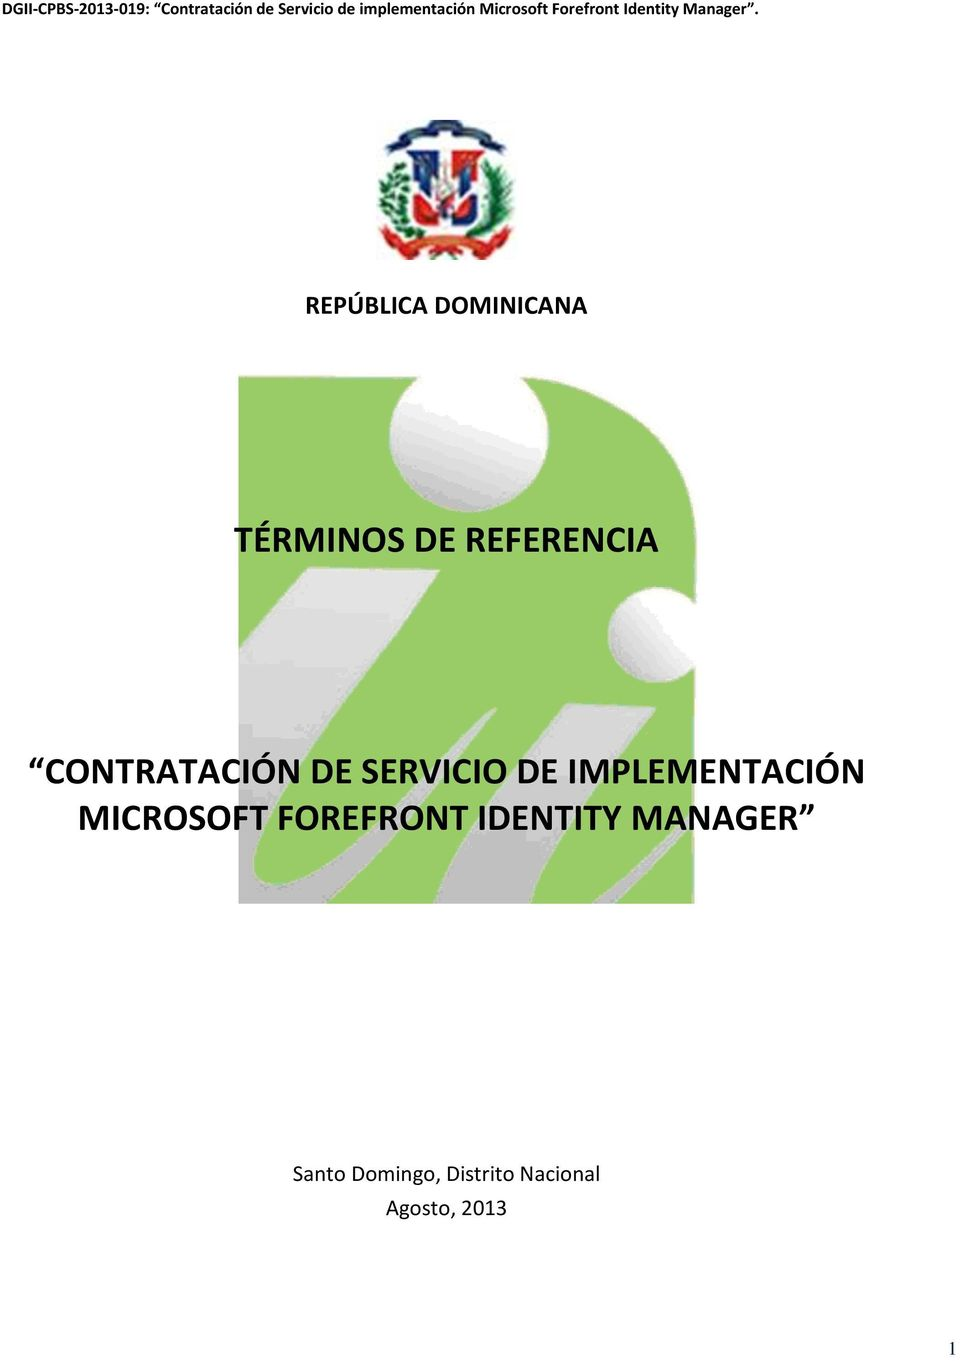 IMPLEMENTACIÓN MICROSOFT FOREFRONT